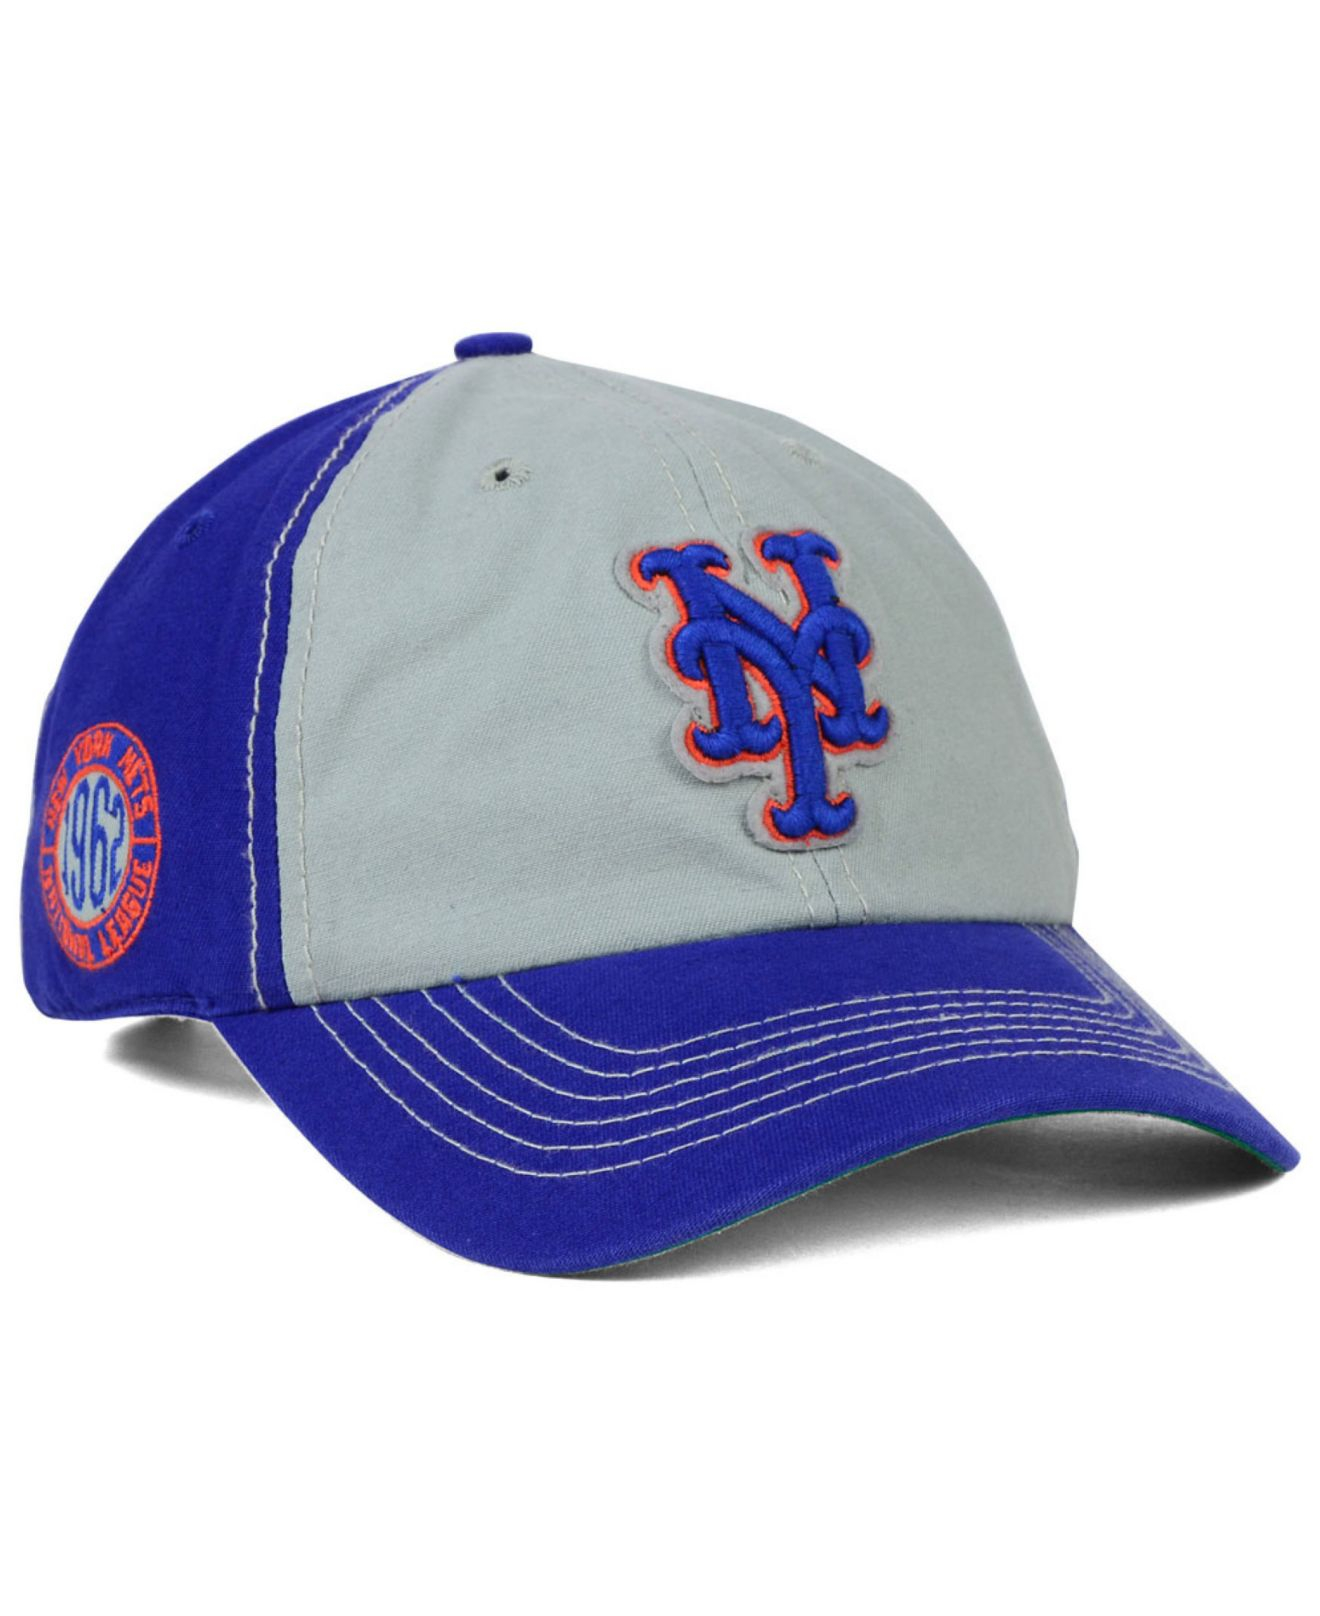 superior quality 93a73 d7a68 ... blue orange summer cap caps mens 81a7f 0bce1  aliexpress lyst 47 brand new  york mets adjustable clean up cap in blue for men 778e8